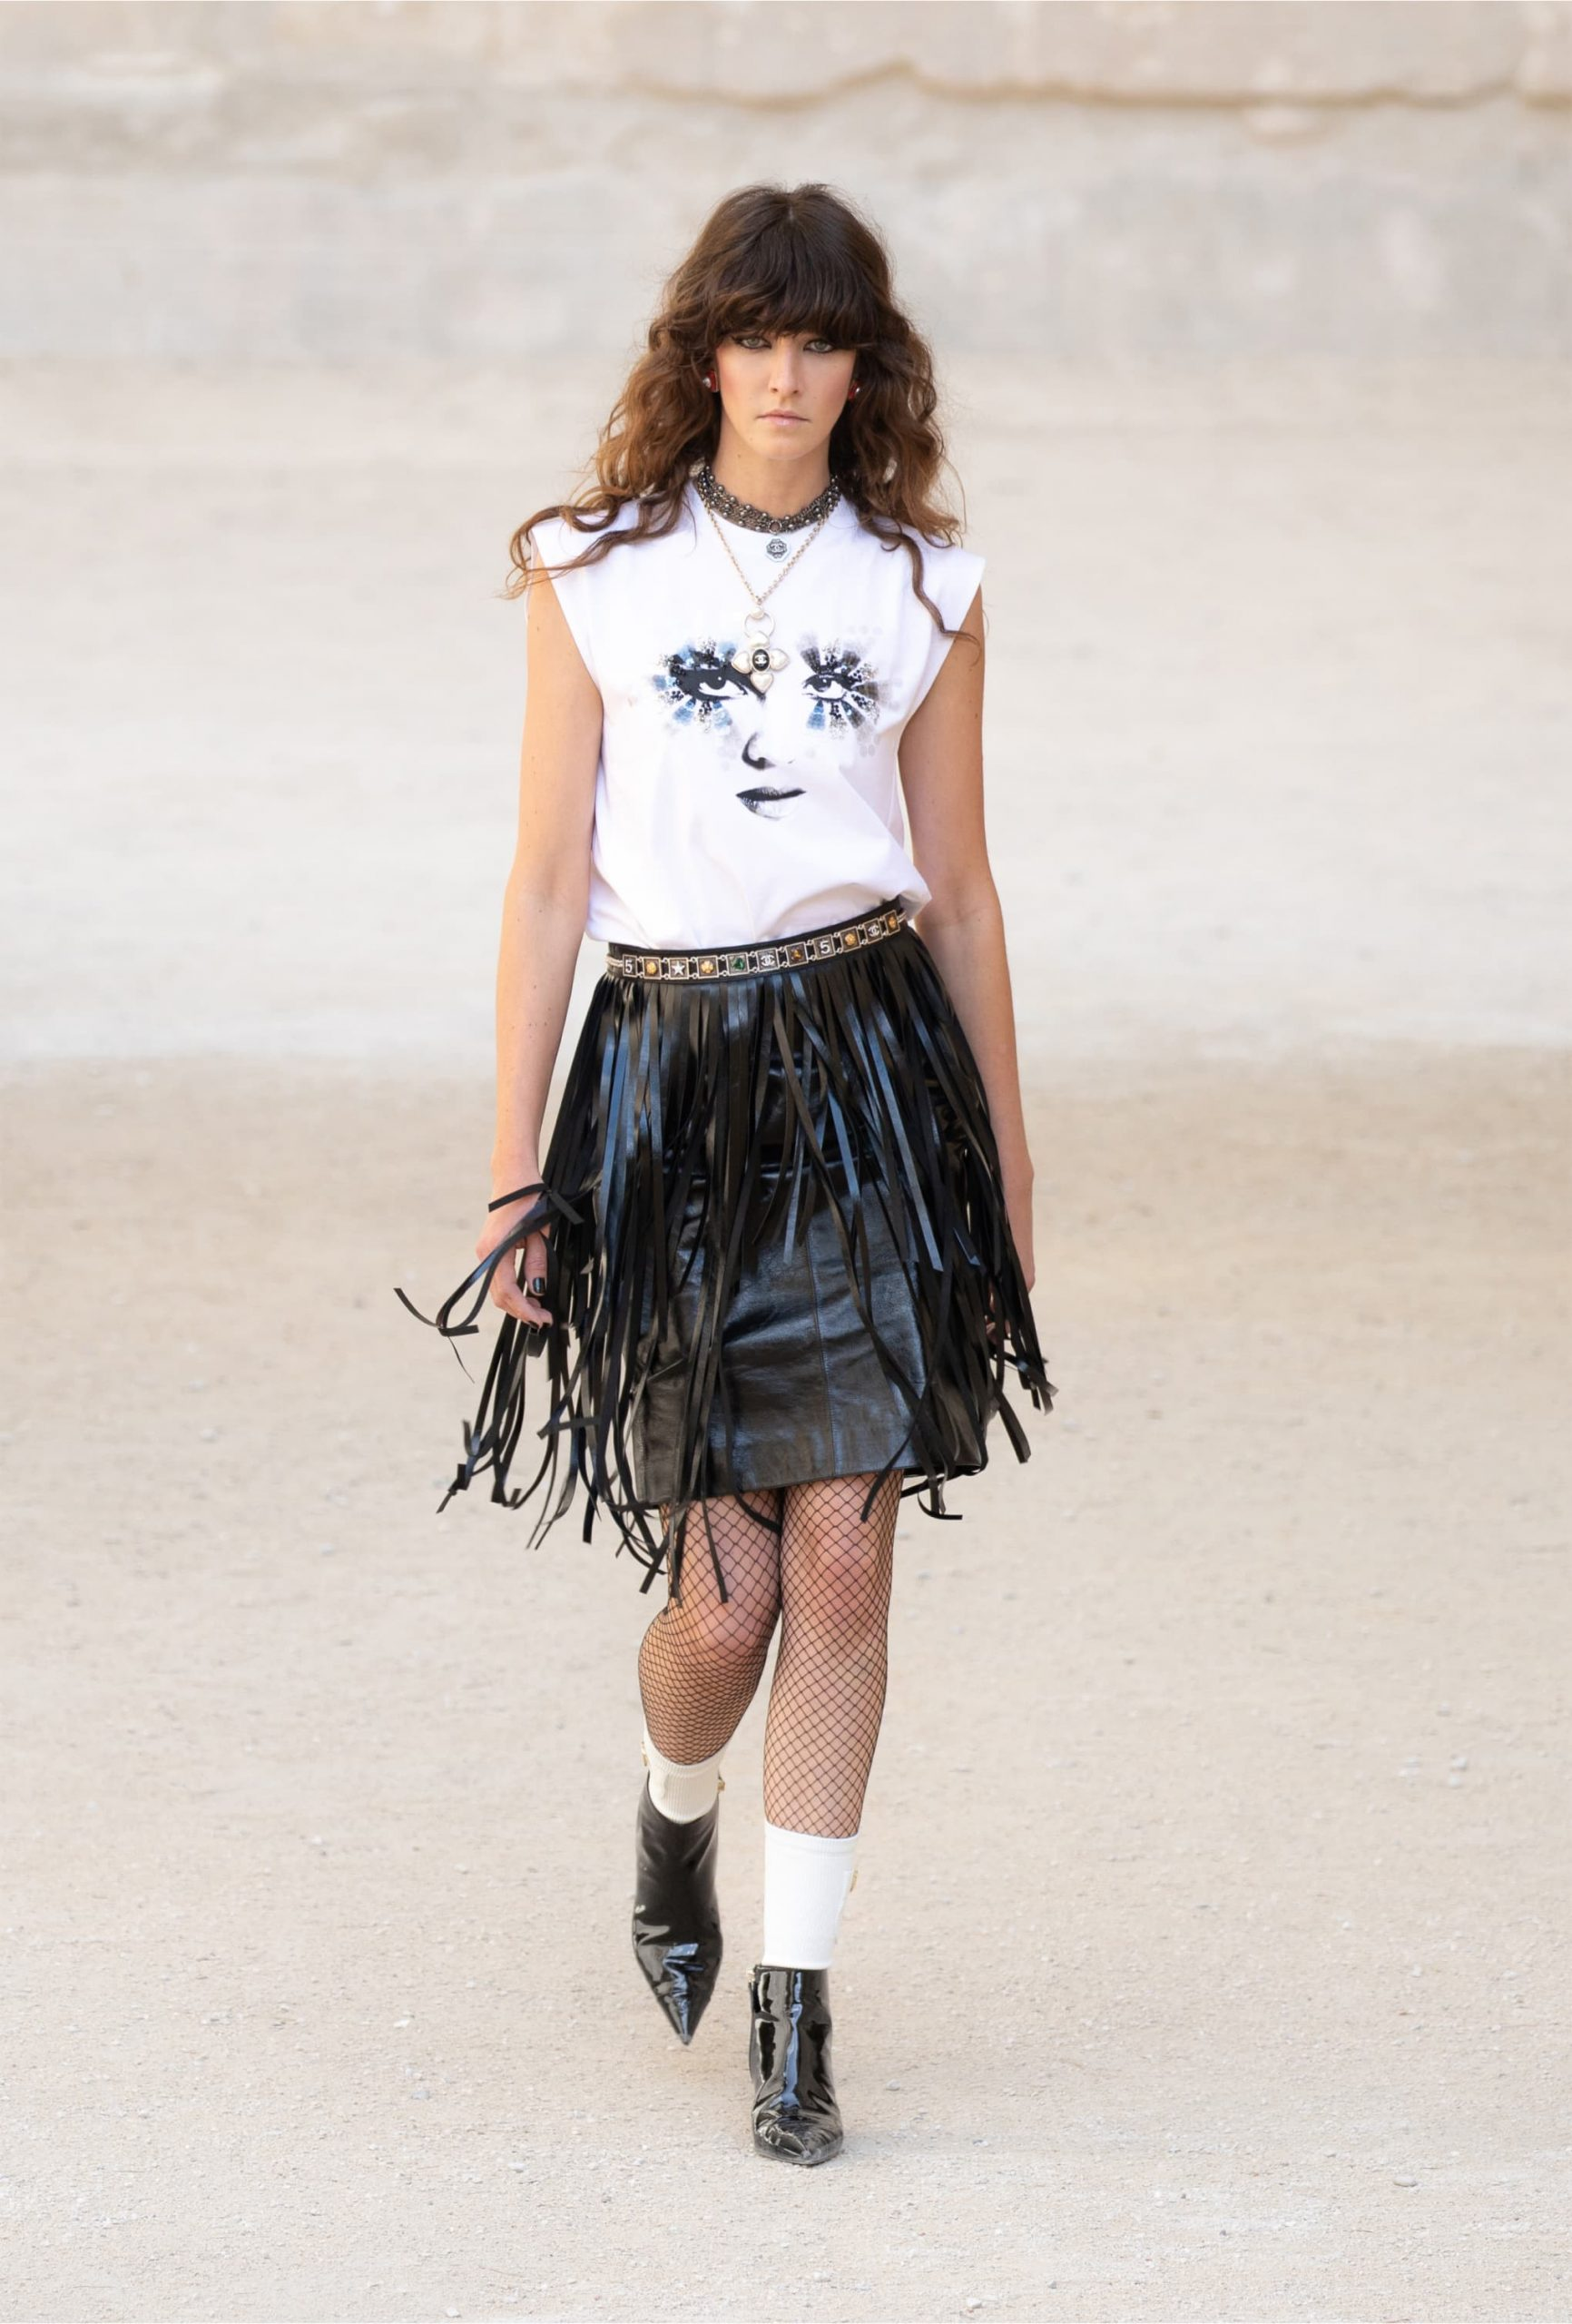 Chanel Cruise 21/2022 Fashion Show Review